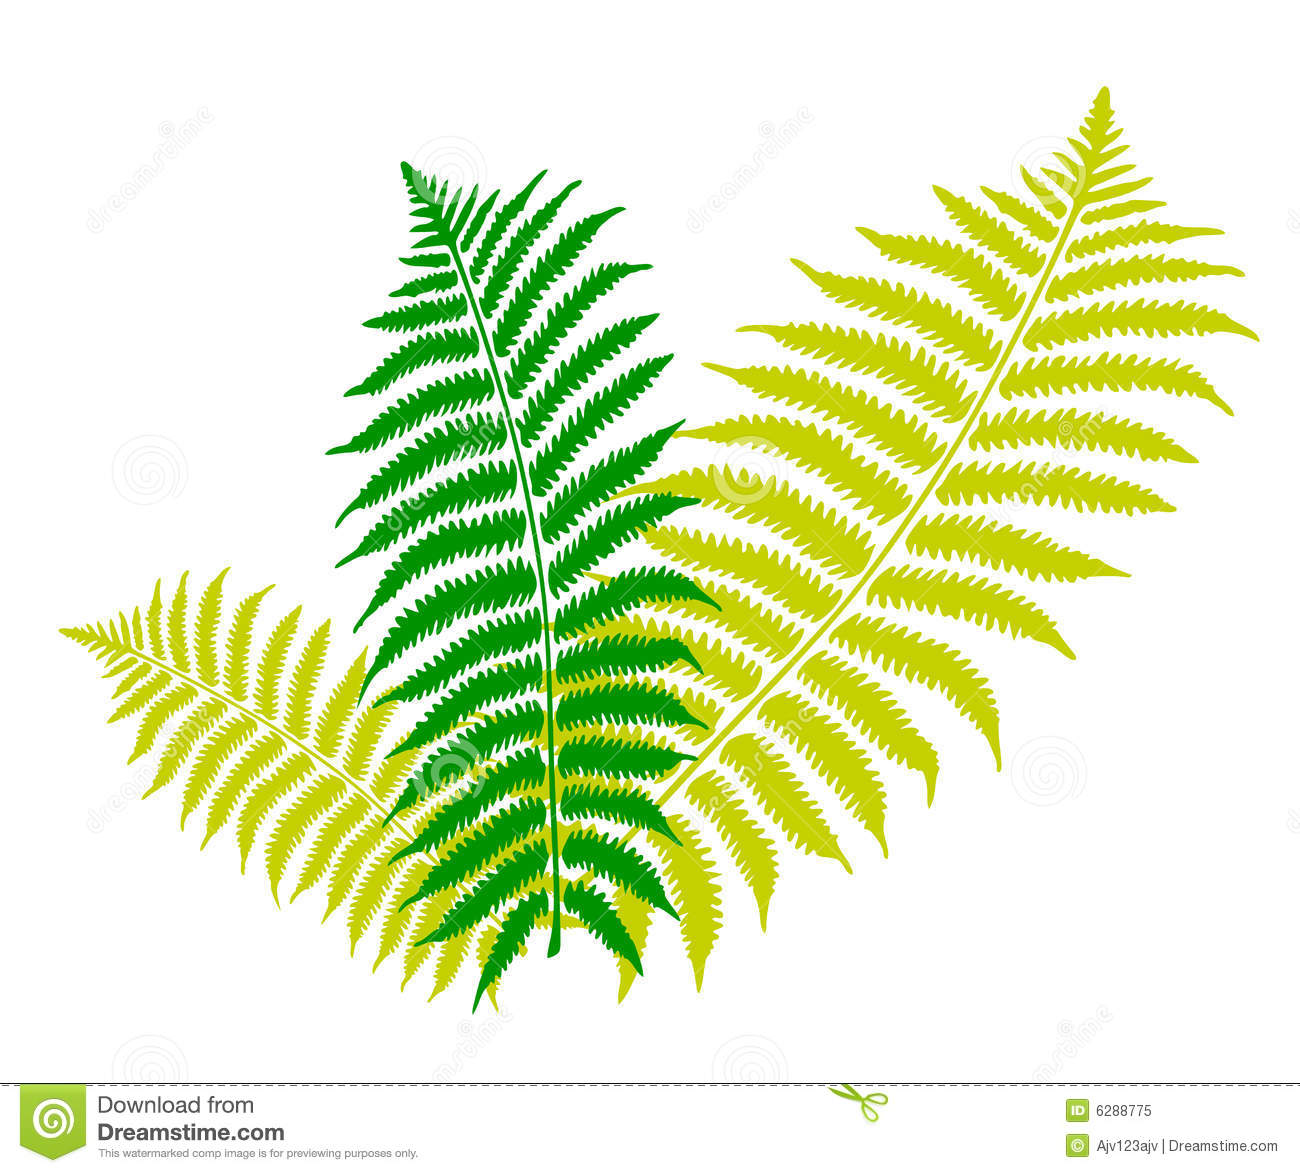 Fern clipart #18, Download drawings